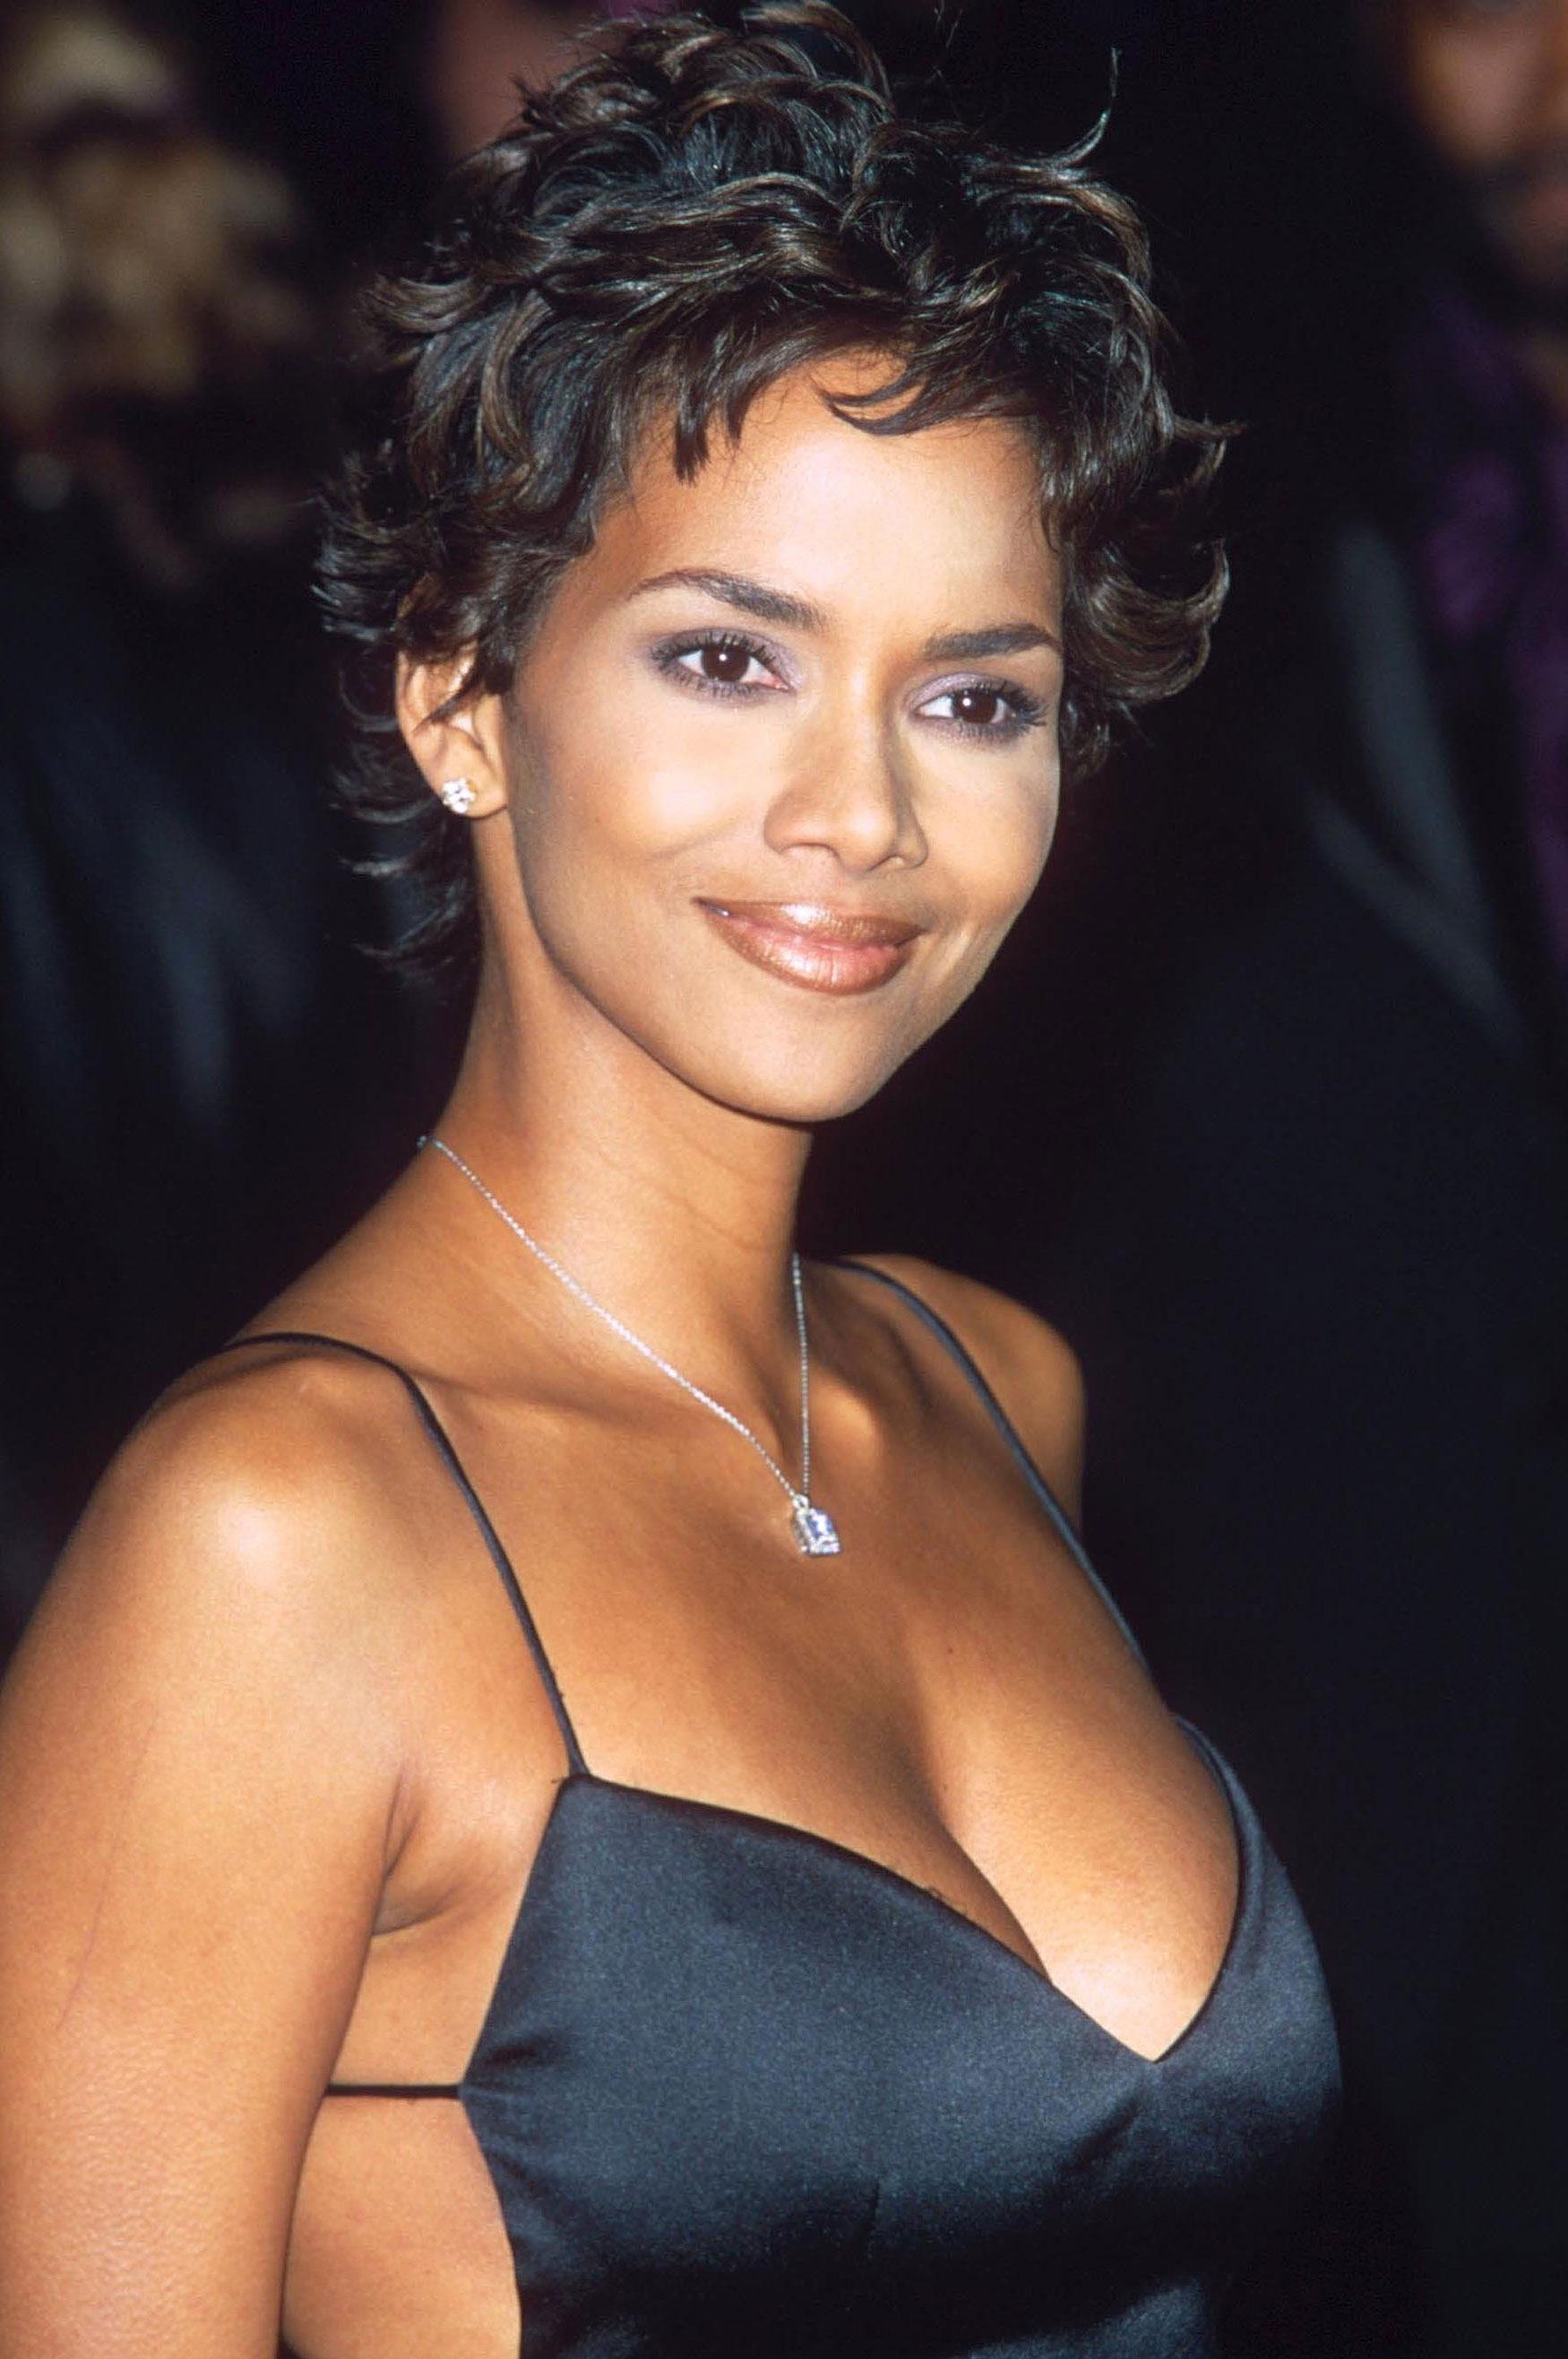 halle berry on her iconic '90s pixie cut